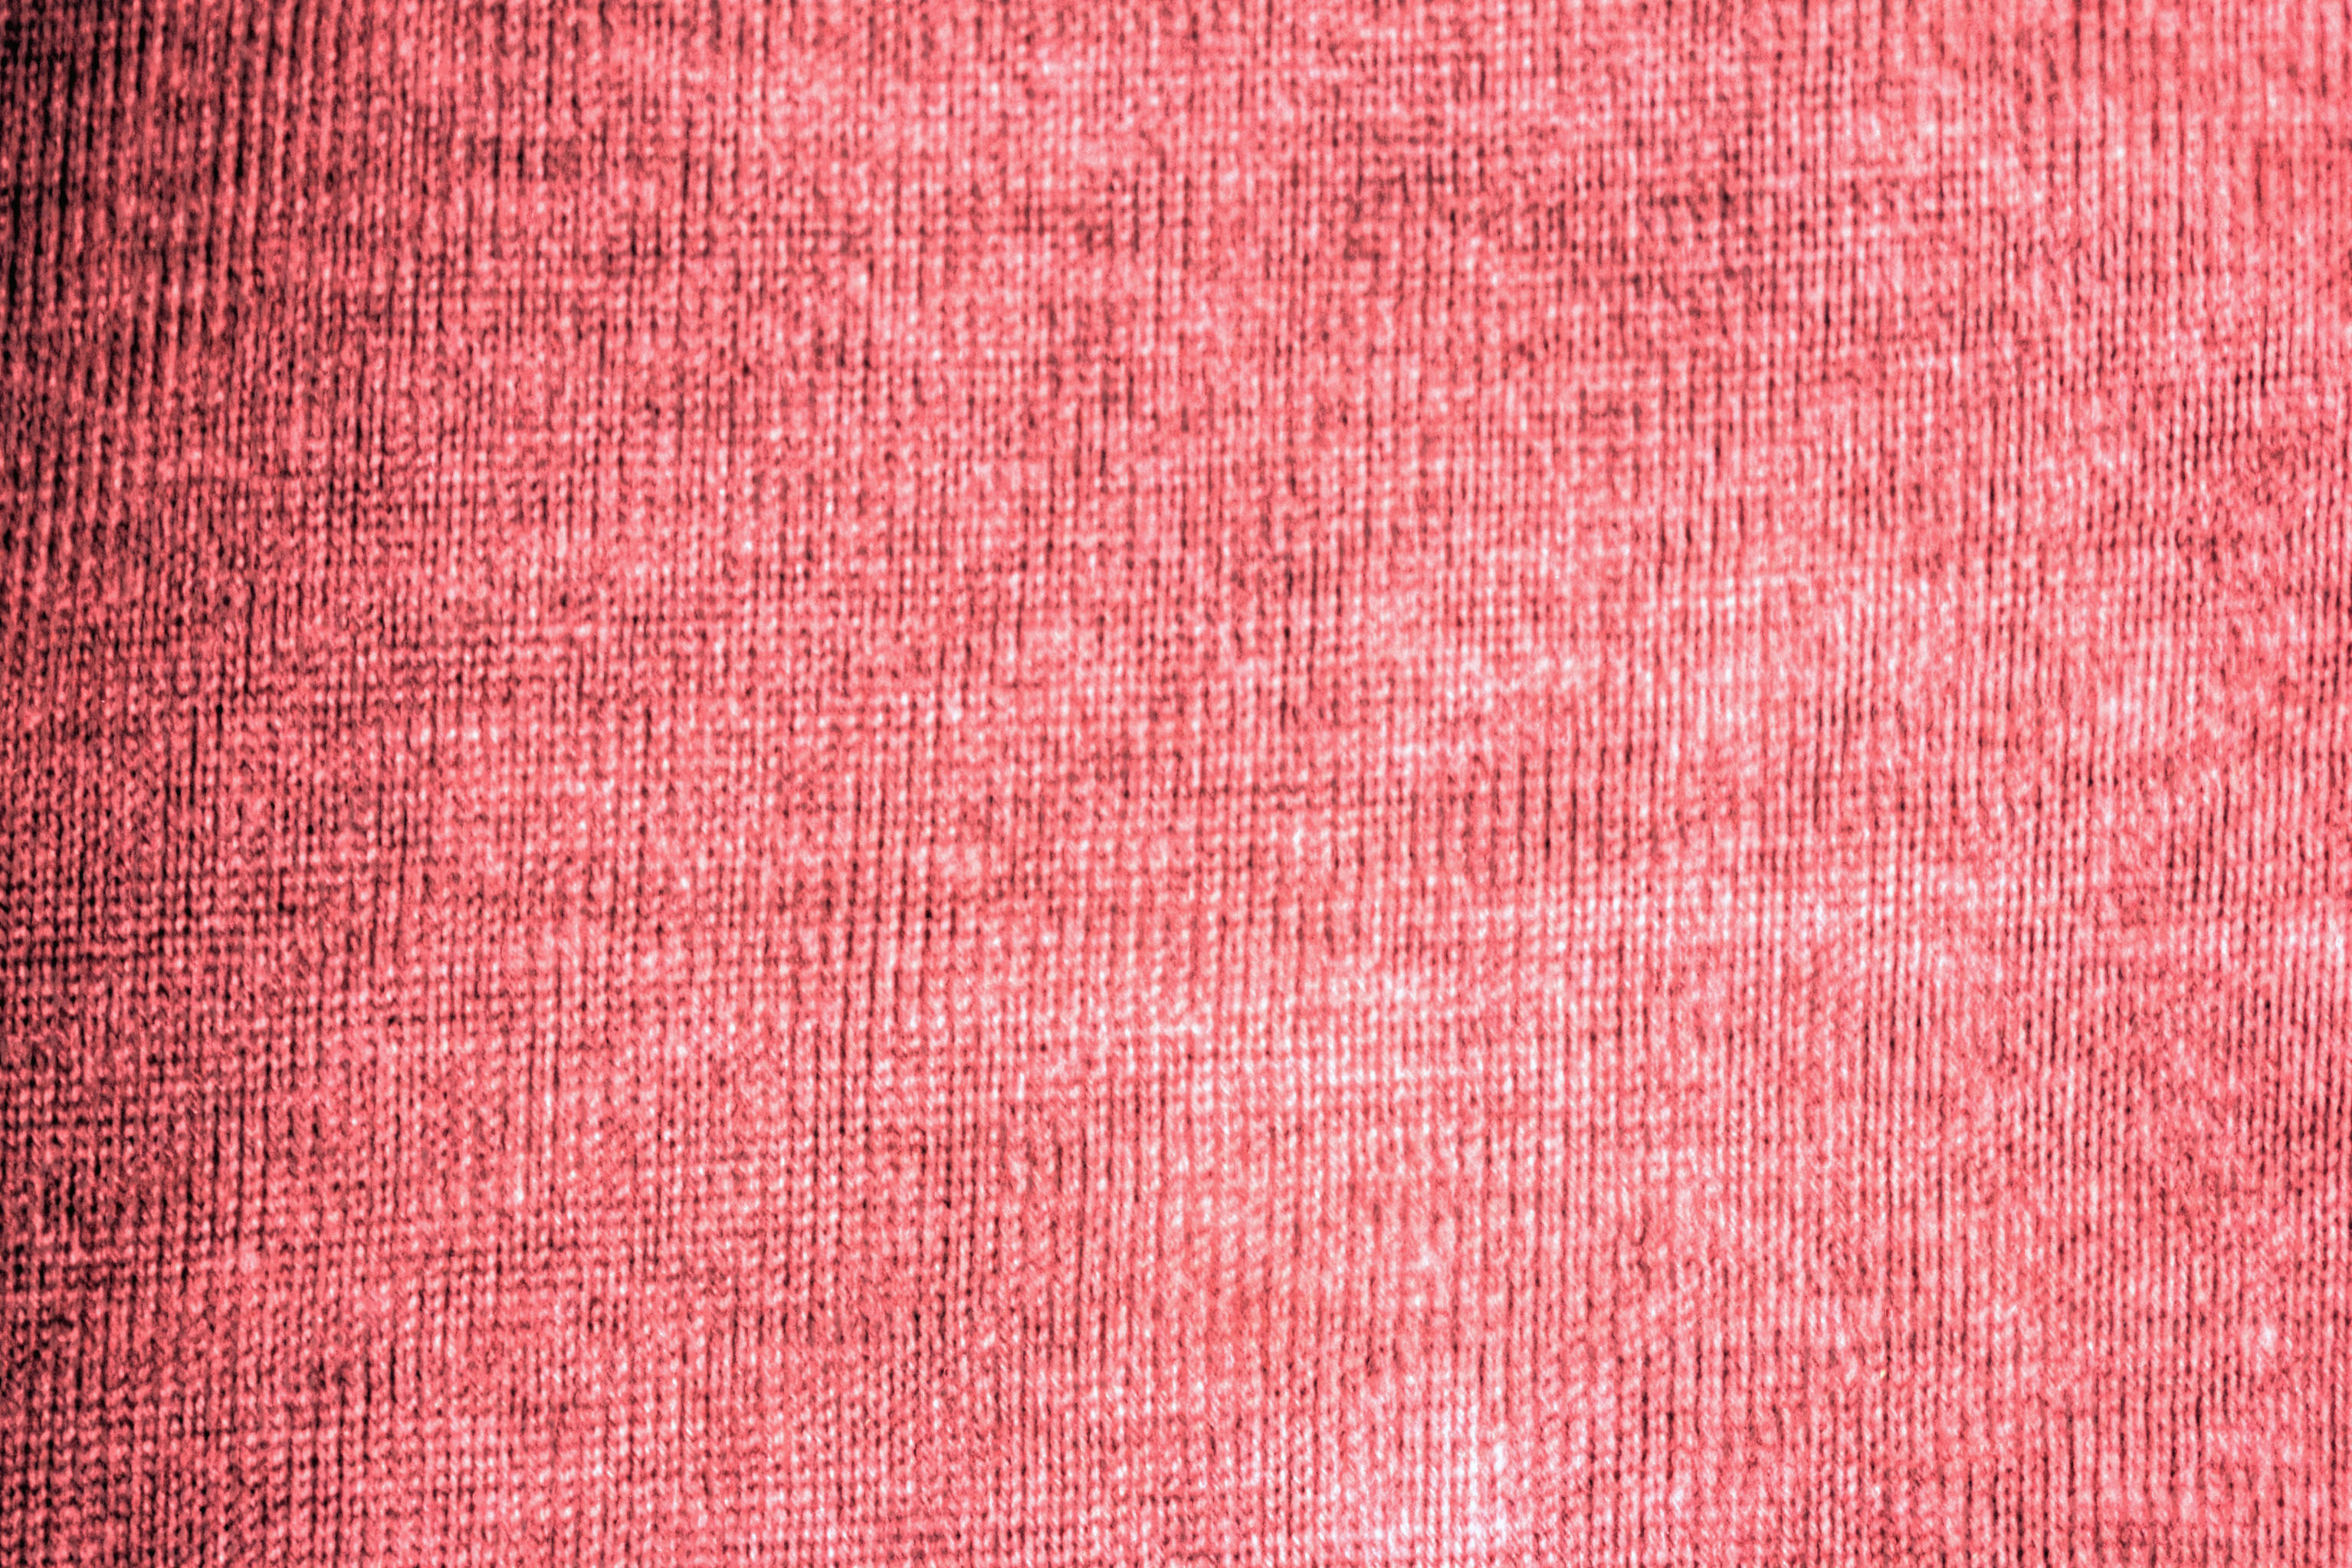 Red Fabric Texture Image Free Stock Photo Public